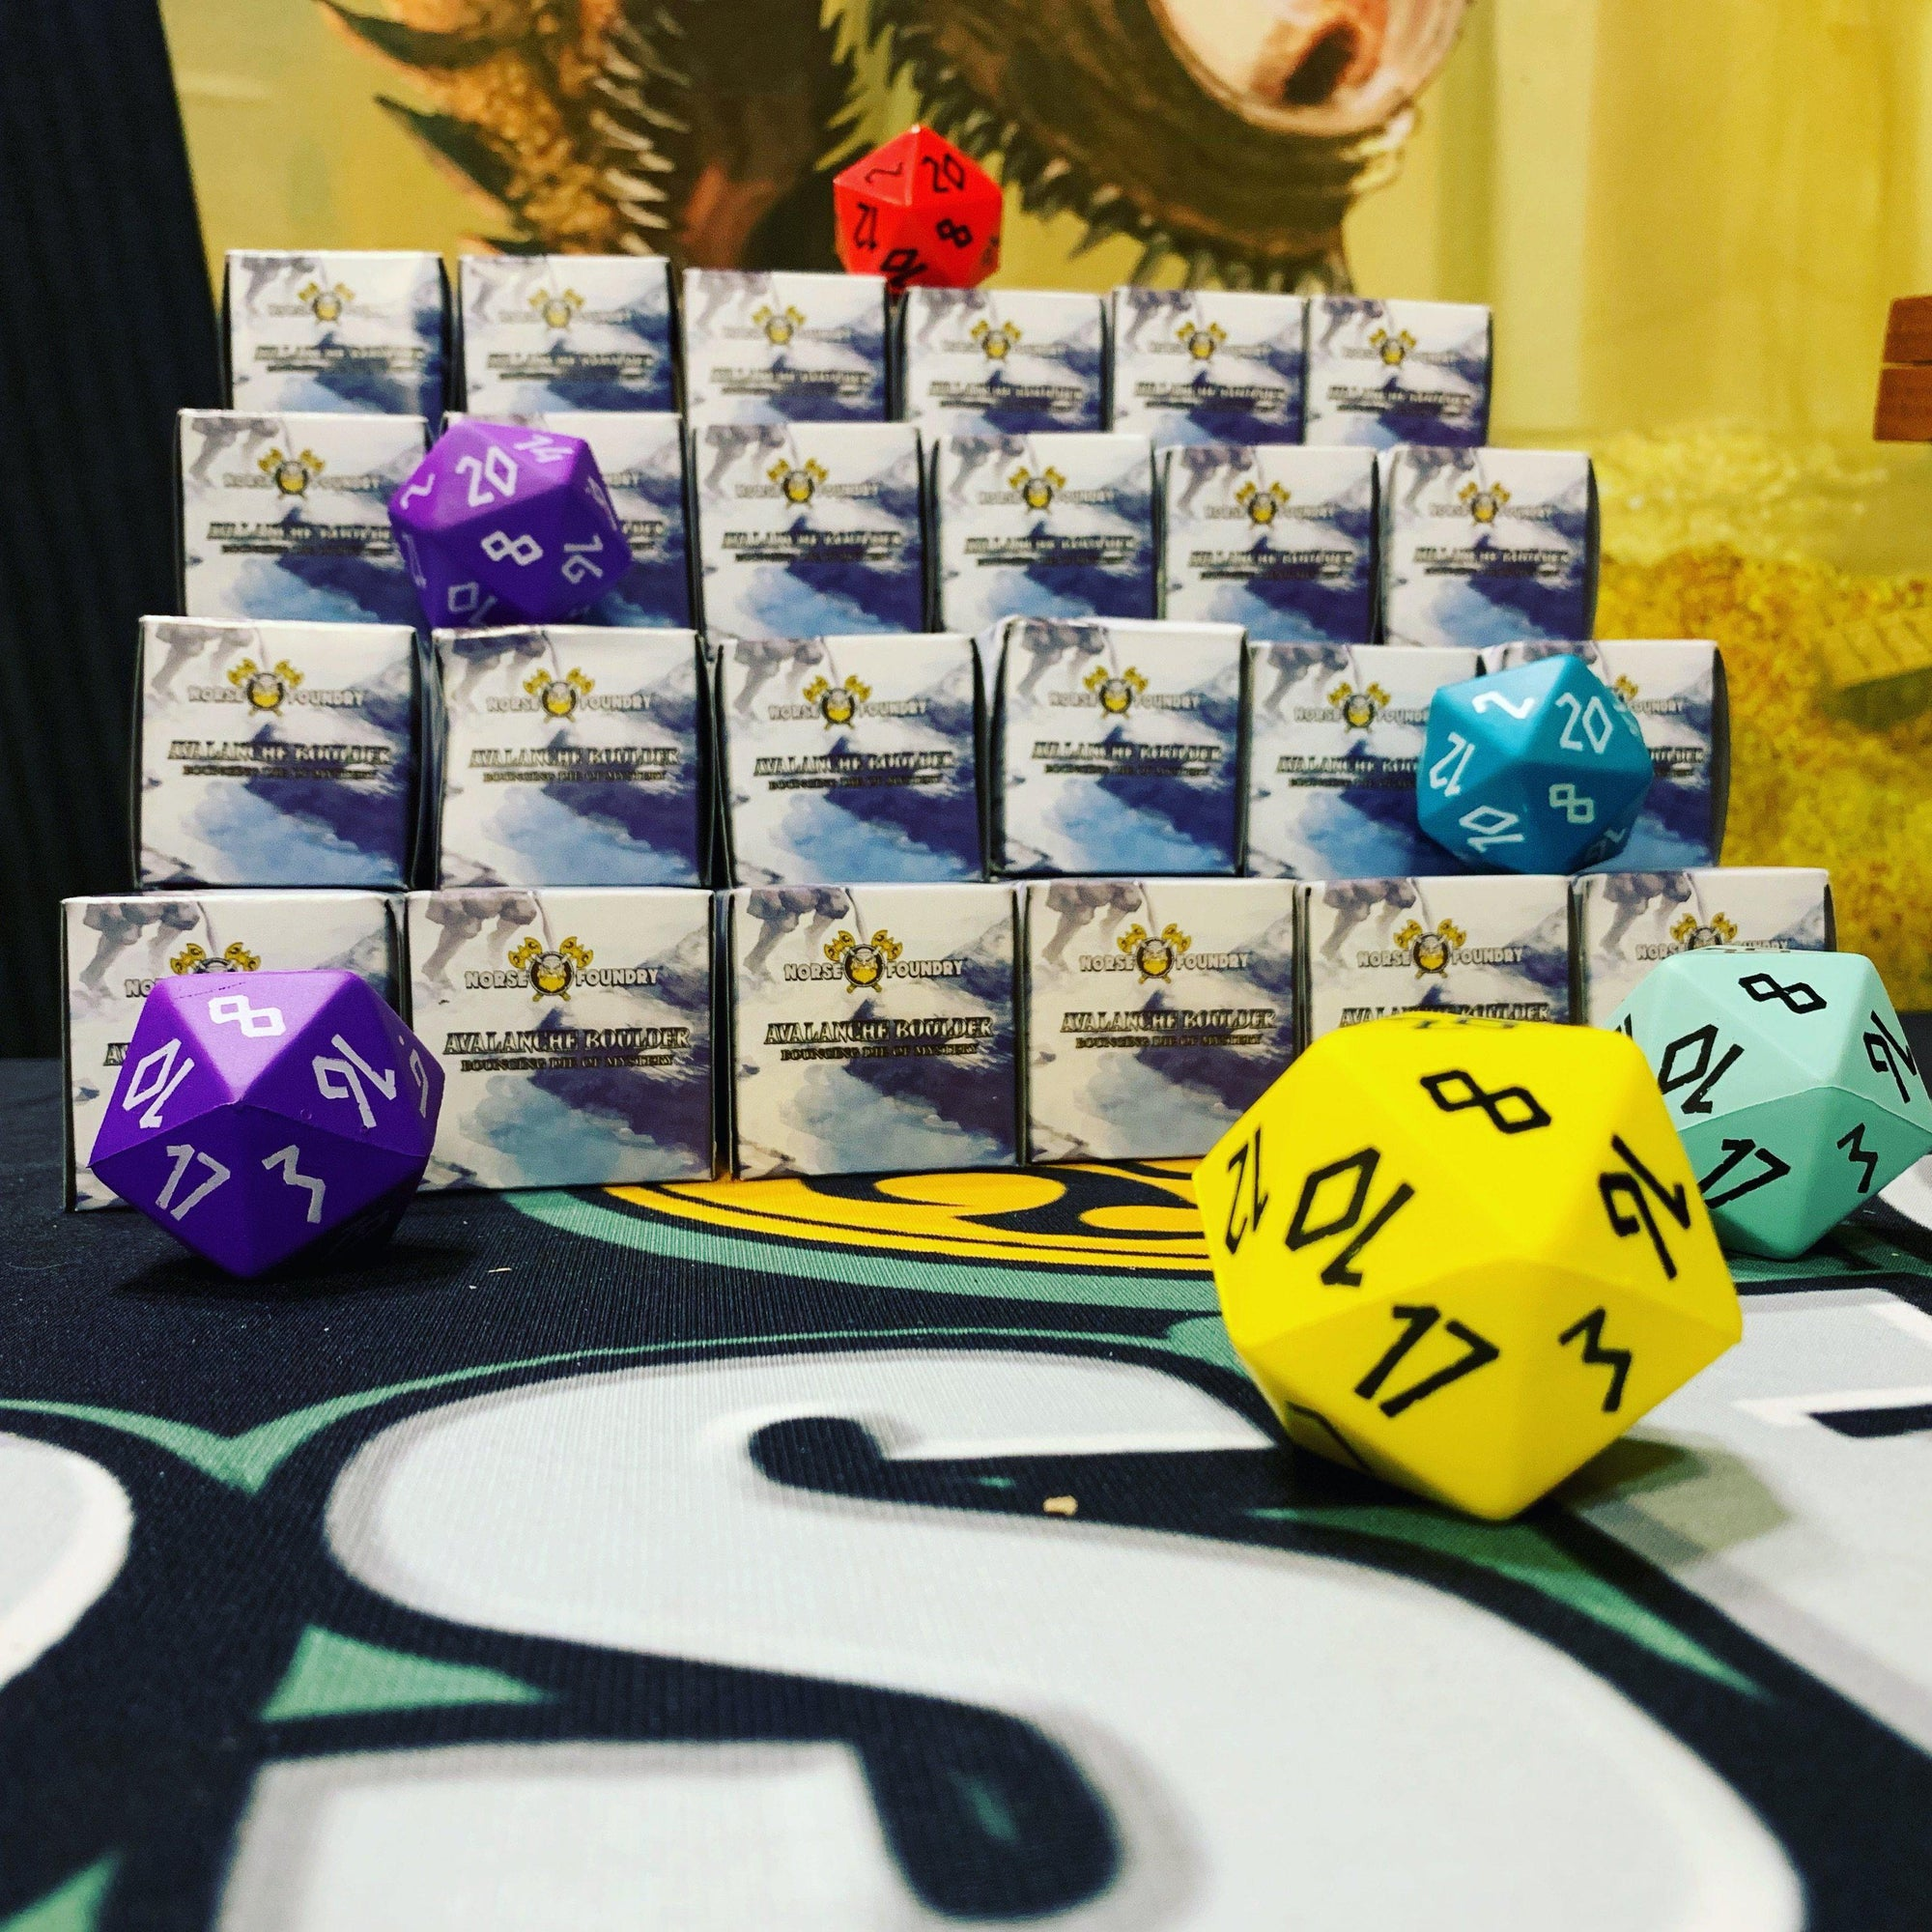 Avalanche Boulder ® - Mystery Box Boulders ® 45mm Foam Dice by Norse Foundry